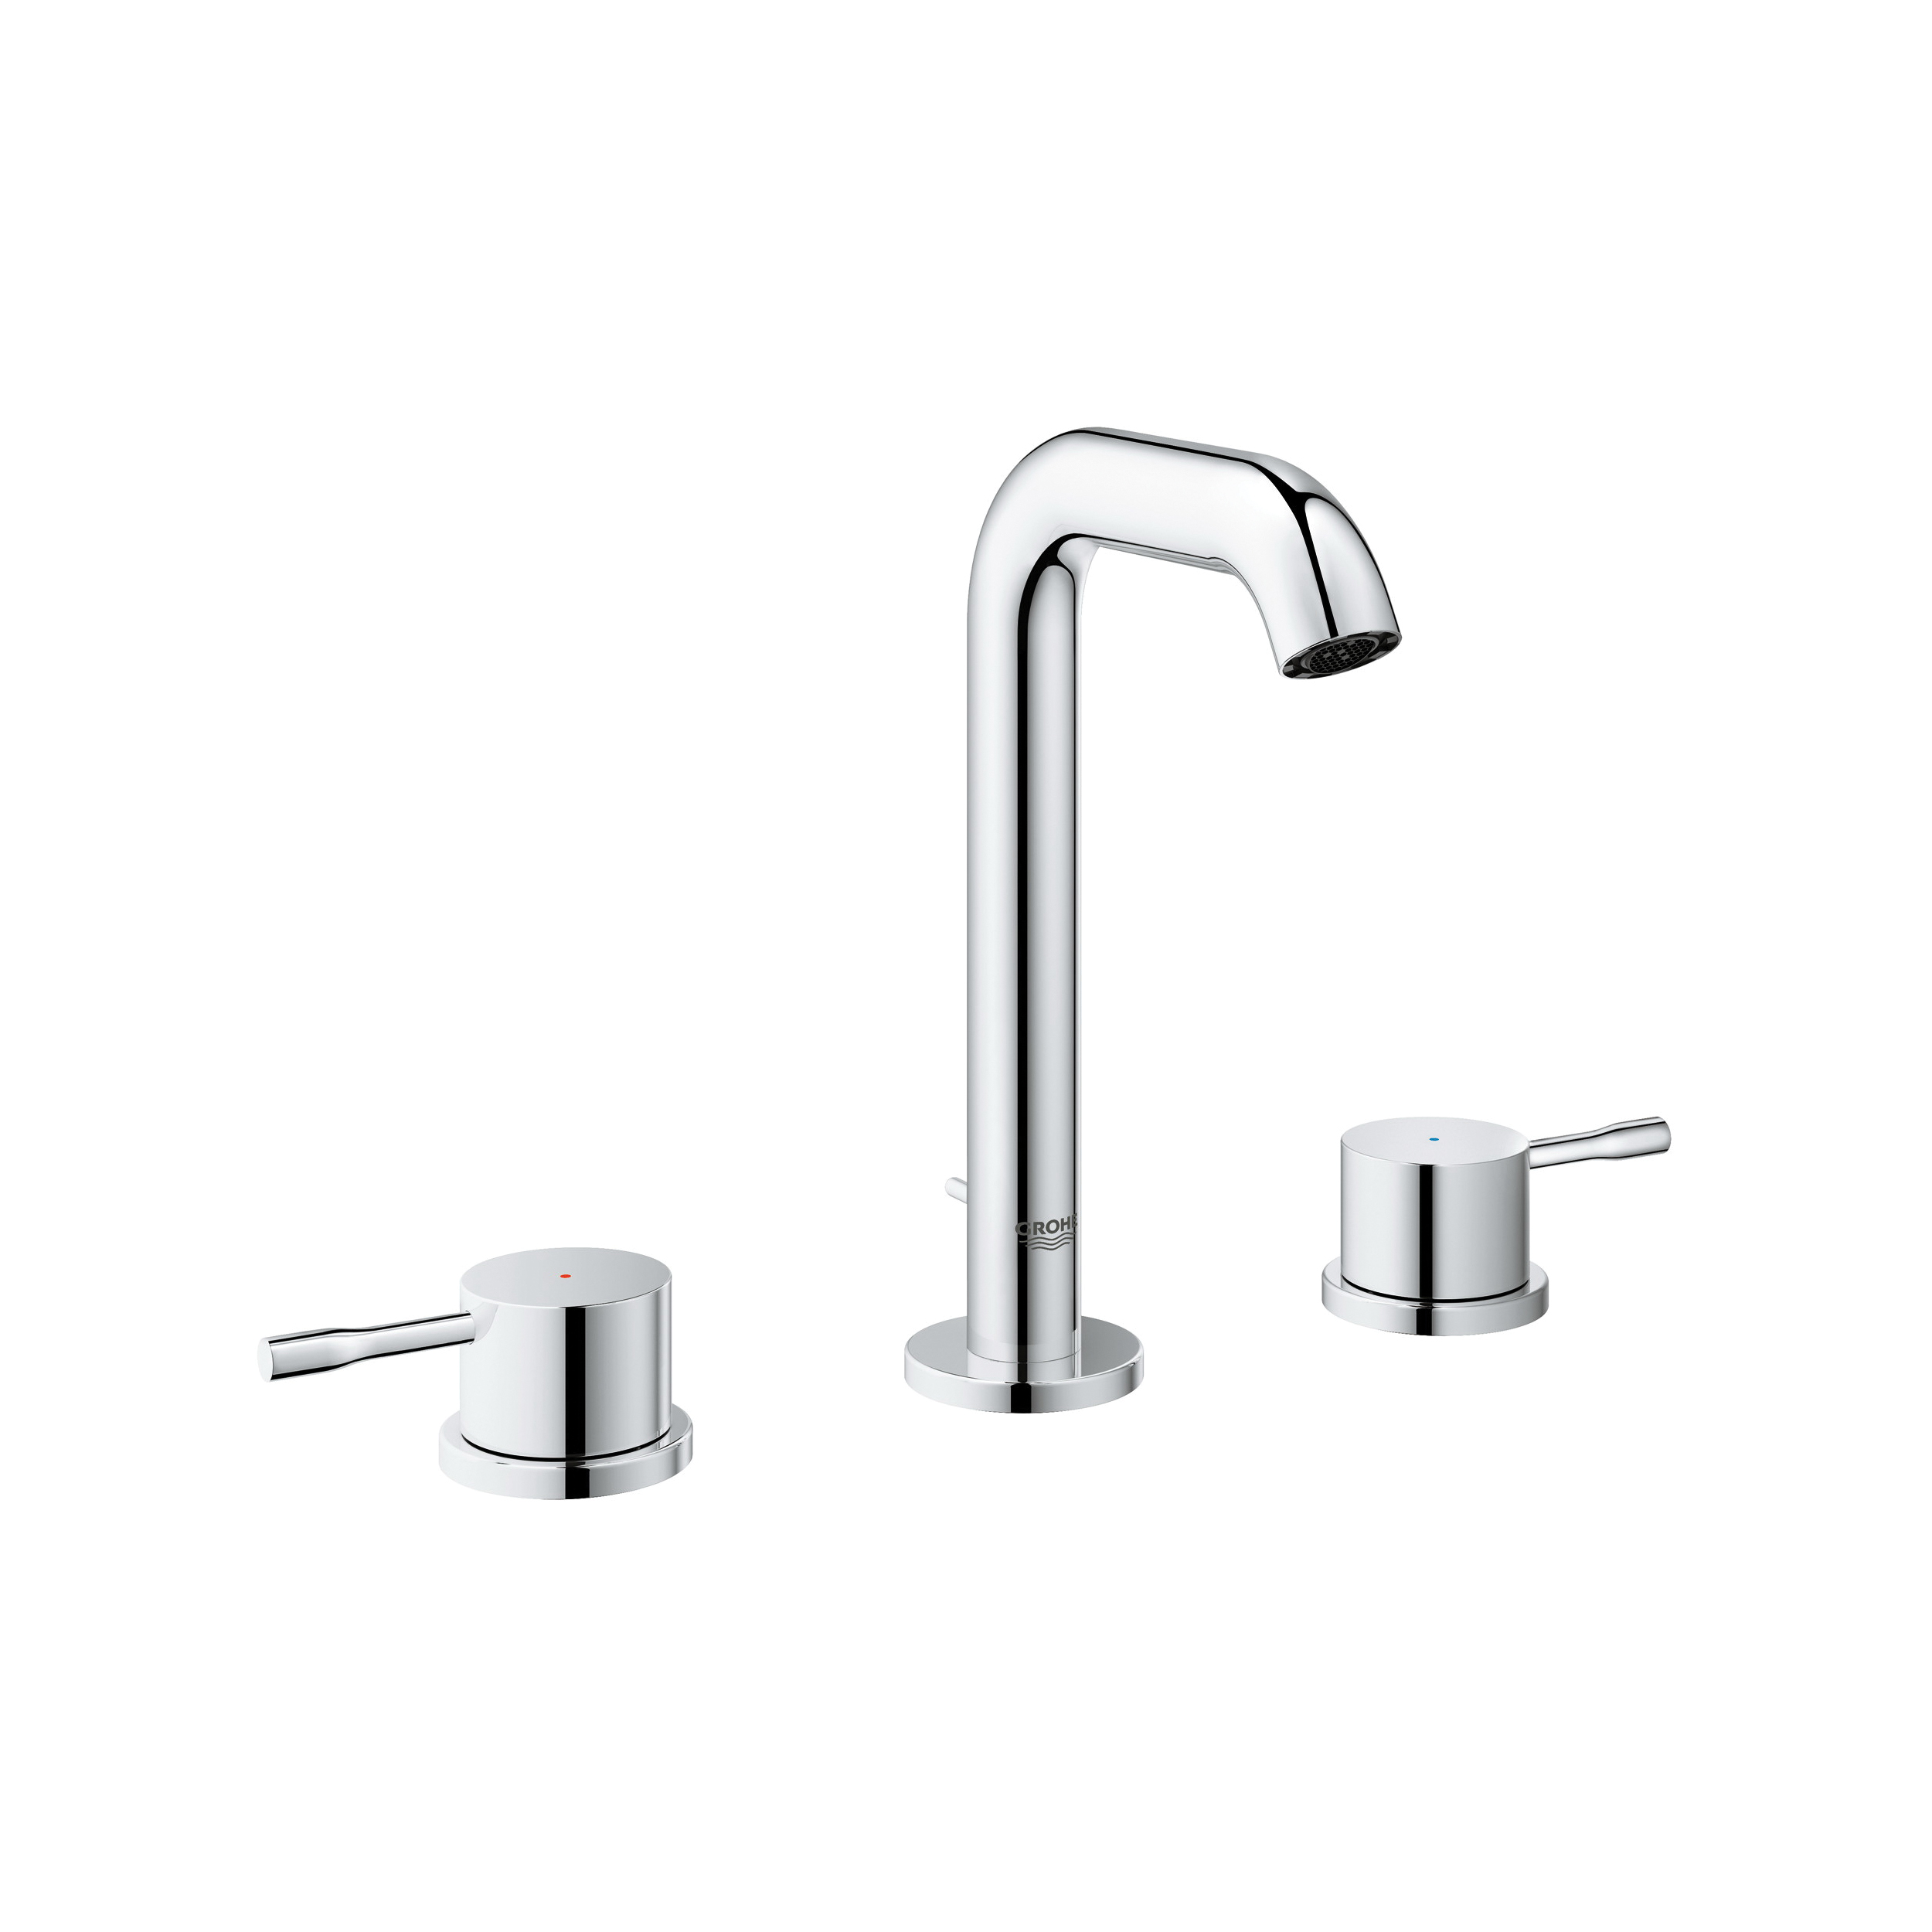 GROHE 2029700A Essence™ New Small Widespread Bathroom Basin Mixer, 1.2 gpm, 5-1/8 in H Spout, 5-1/2 to 22-1/2 in Center, StarLight® Chrome, 2 Handles, Pop-Up Drain, Import